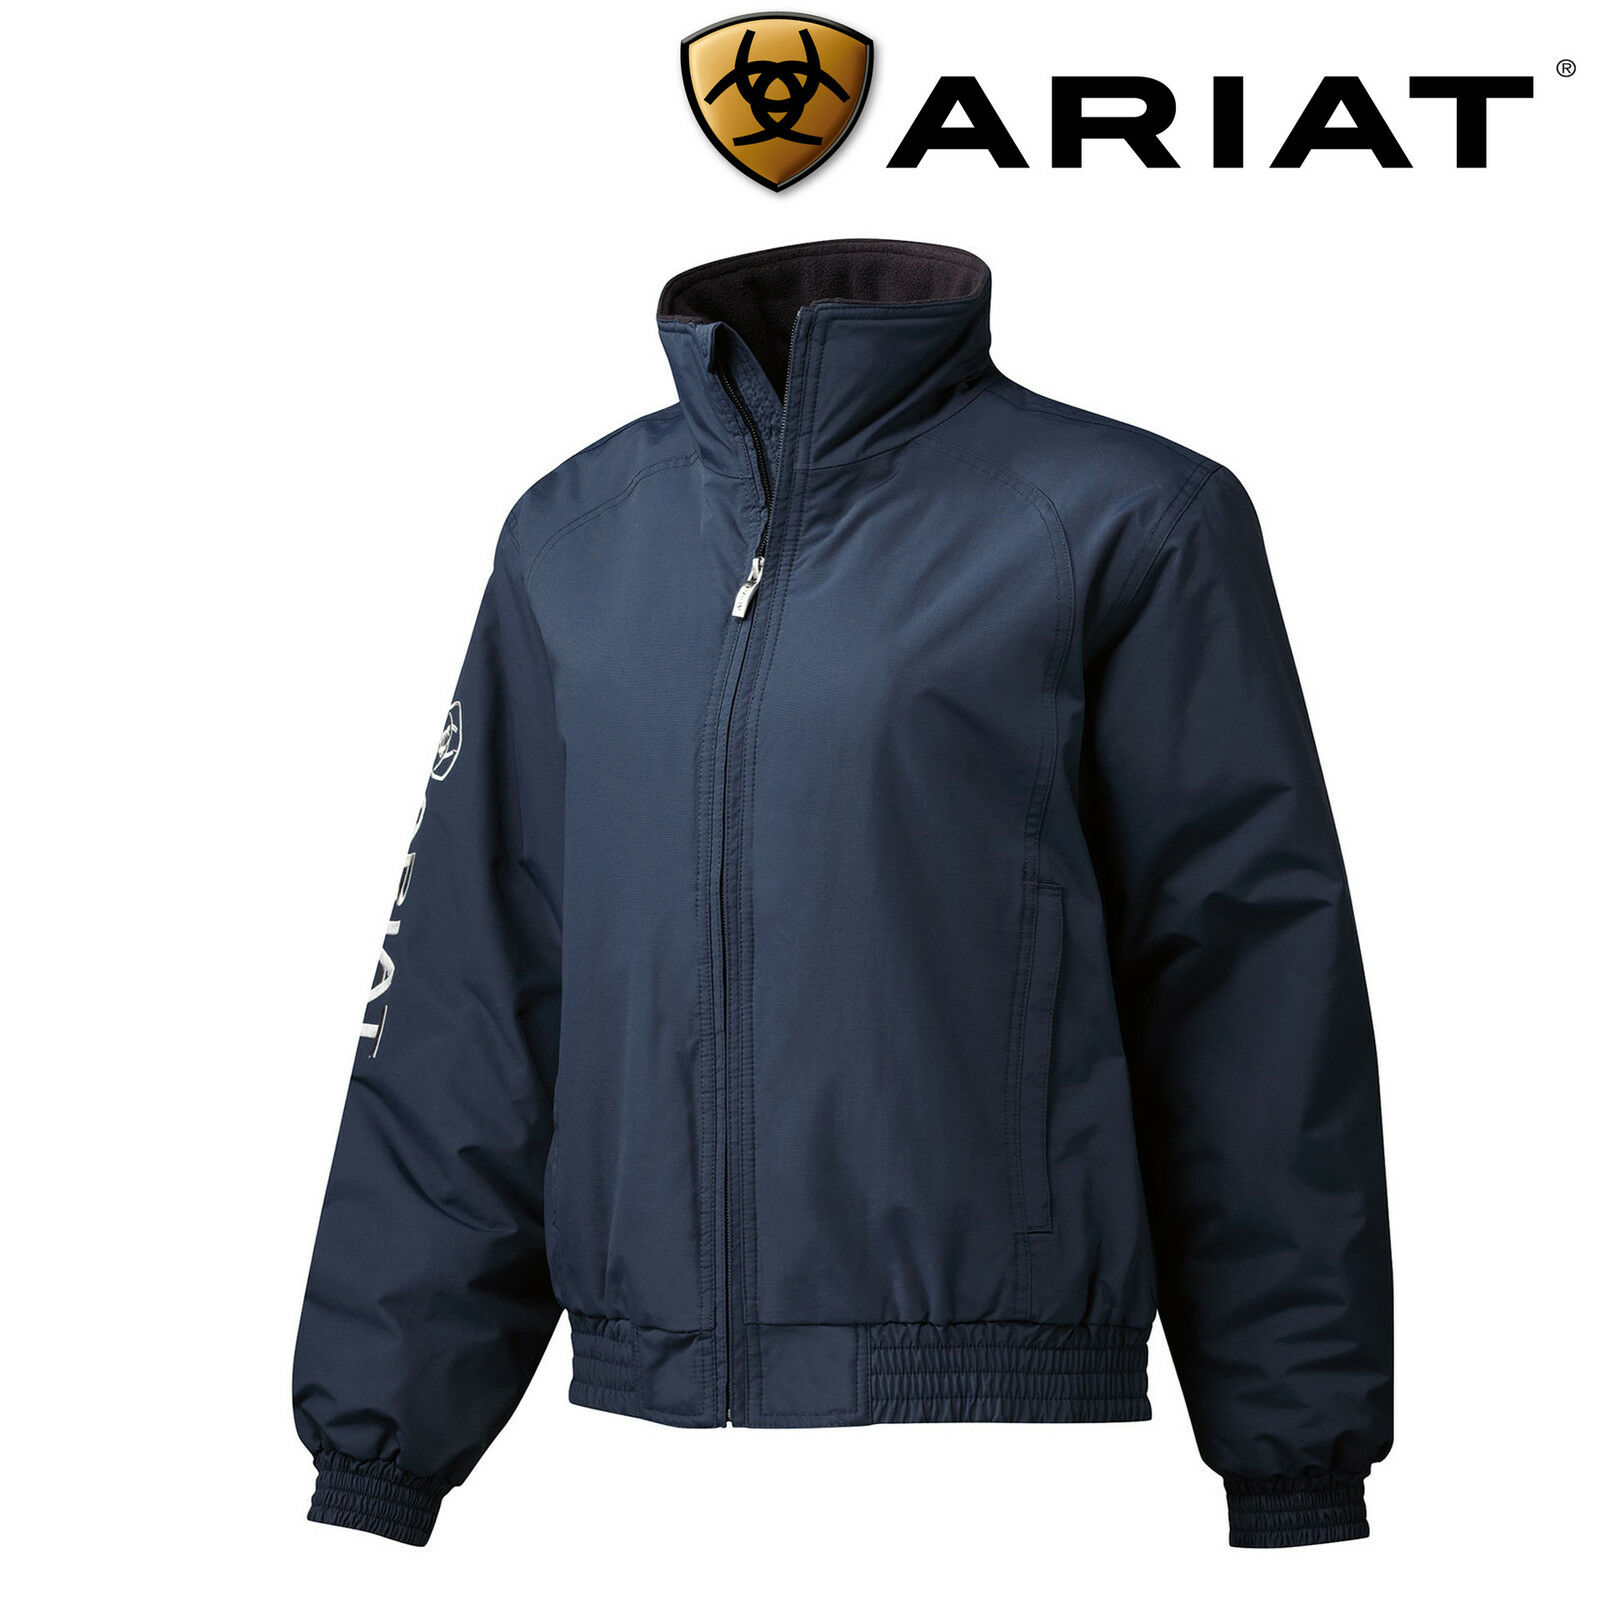 Ariat Para Hombre Impermeable Chaqueta estable